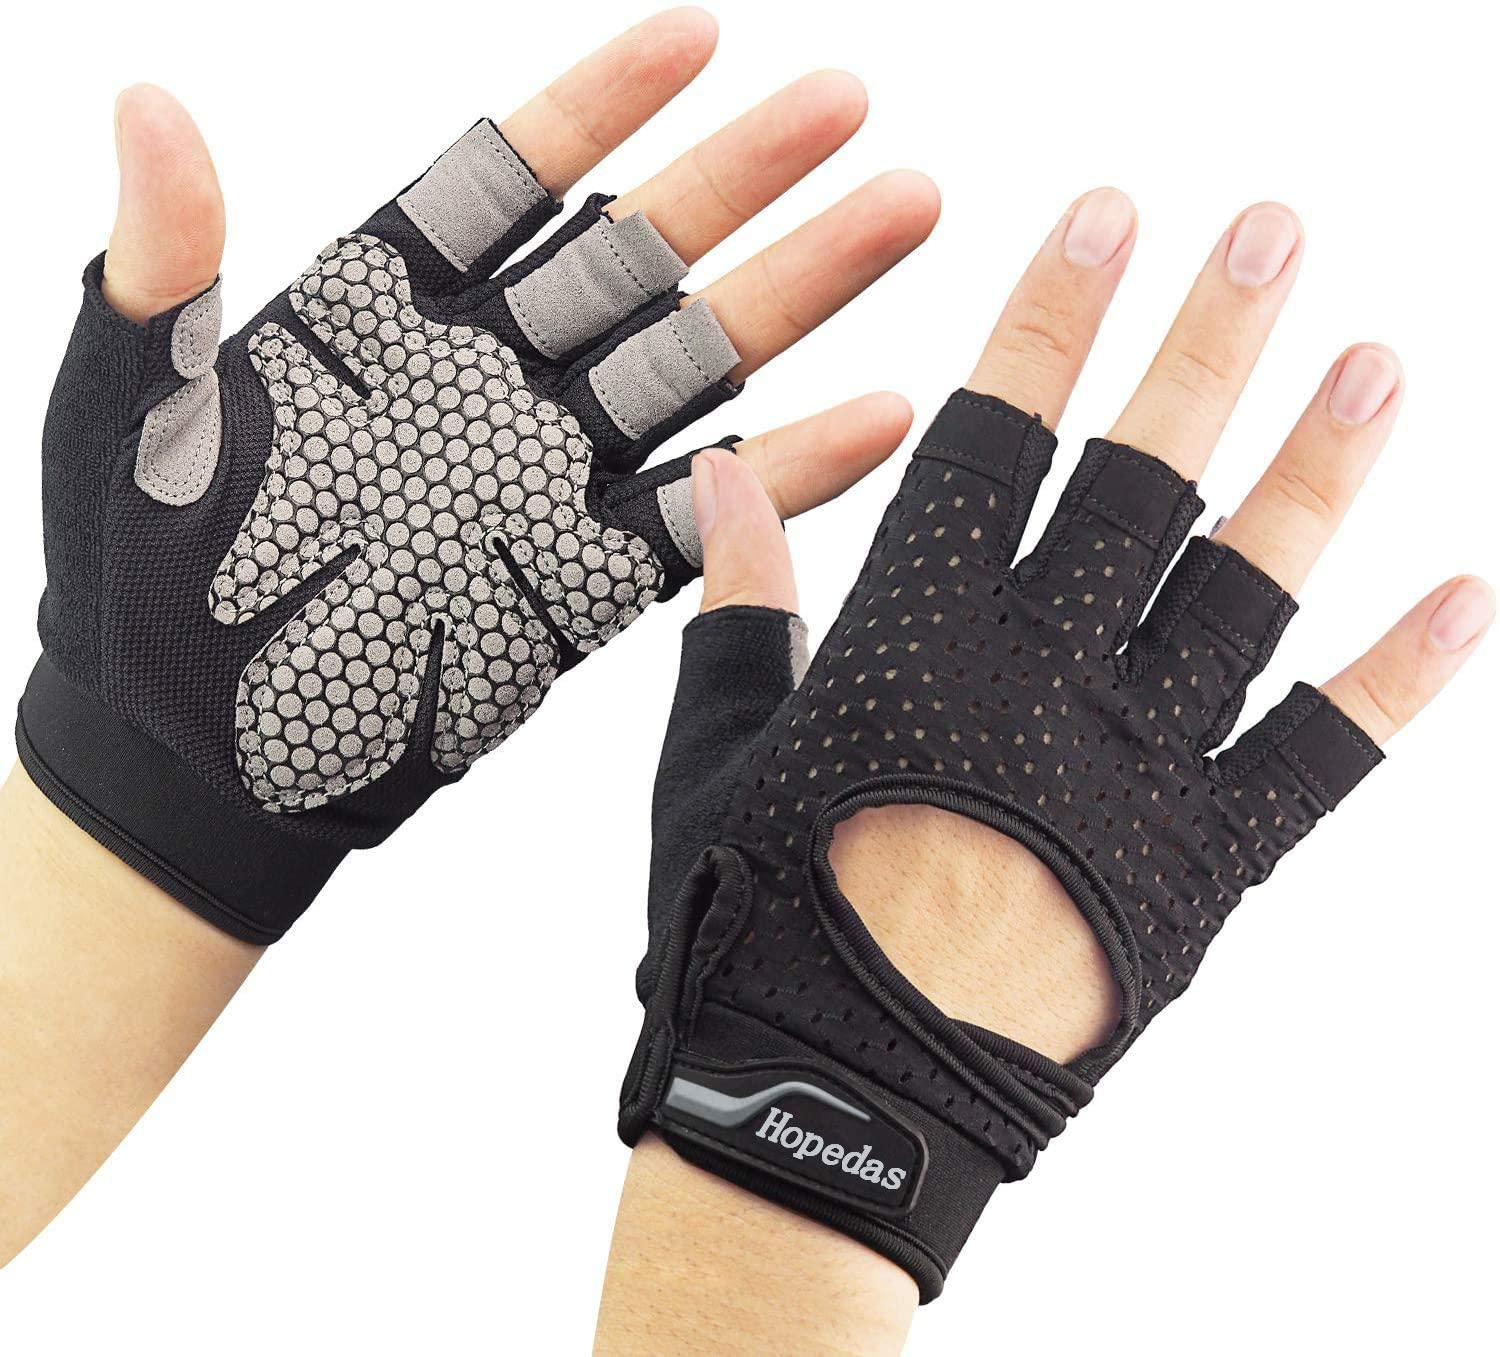 show original title Details about  /1 Pair Training Gloves Fitness Sports Palm Grip Pads Protector Free Size